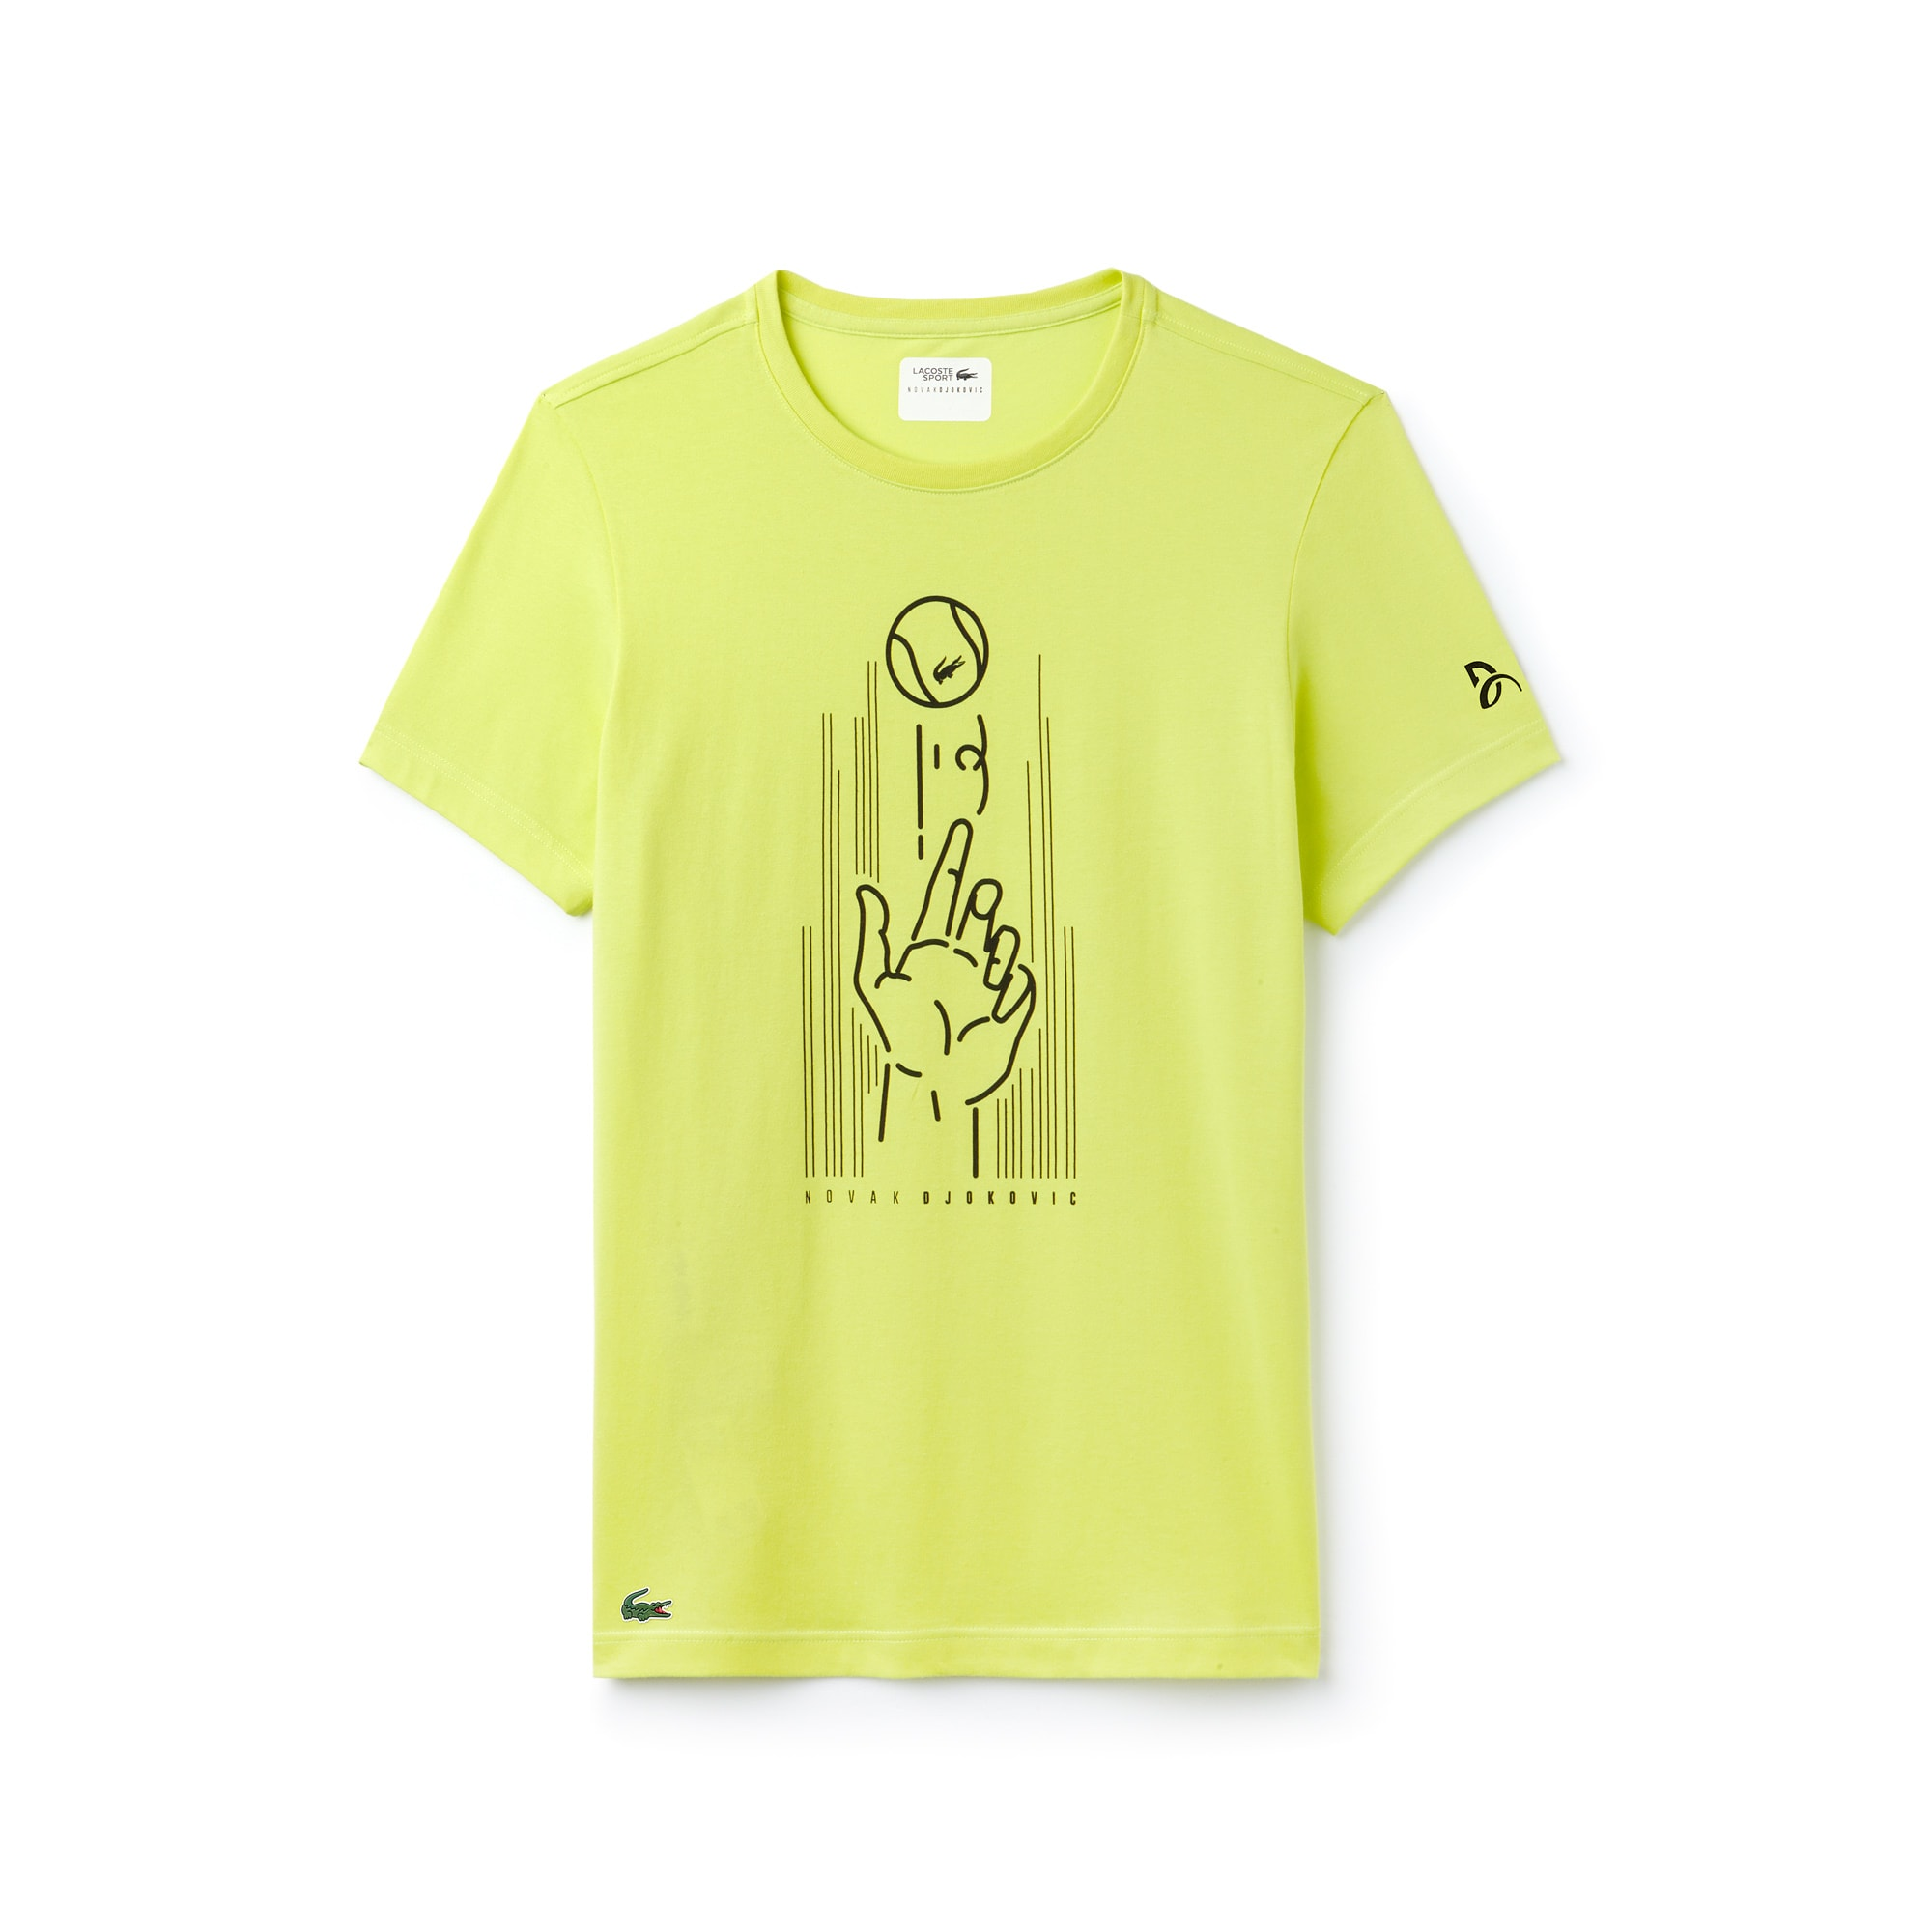 Men's Lacoste SPORT NOVAK DJOKOVIC SUPPORT WITH STYLE - OFF COURT COLLECTION Crew Neck Print Technical Jersey T-shirt